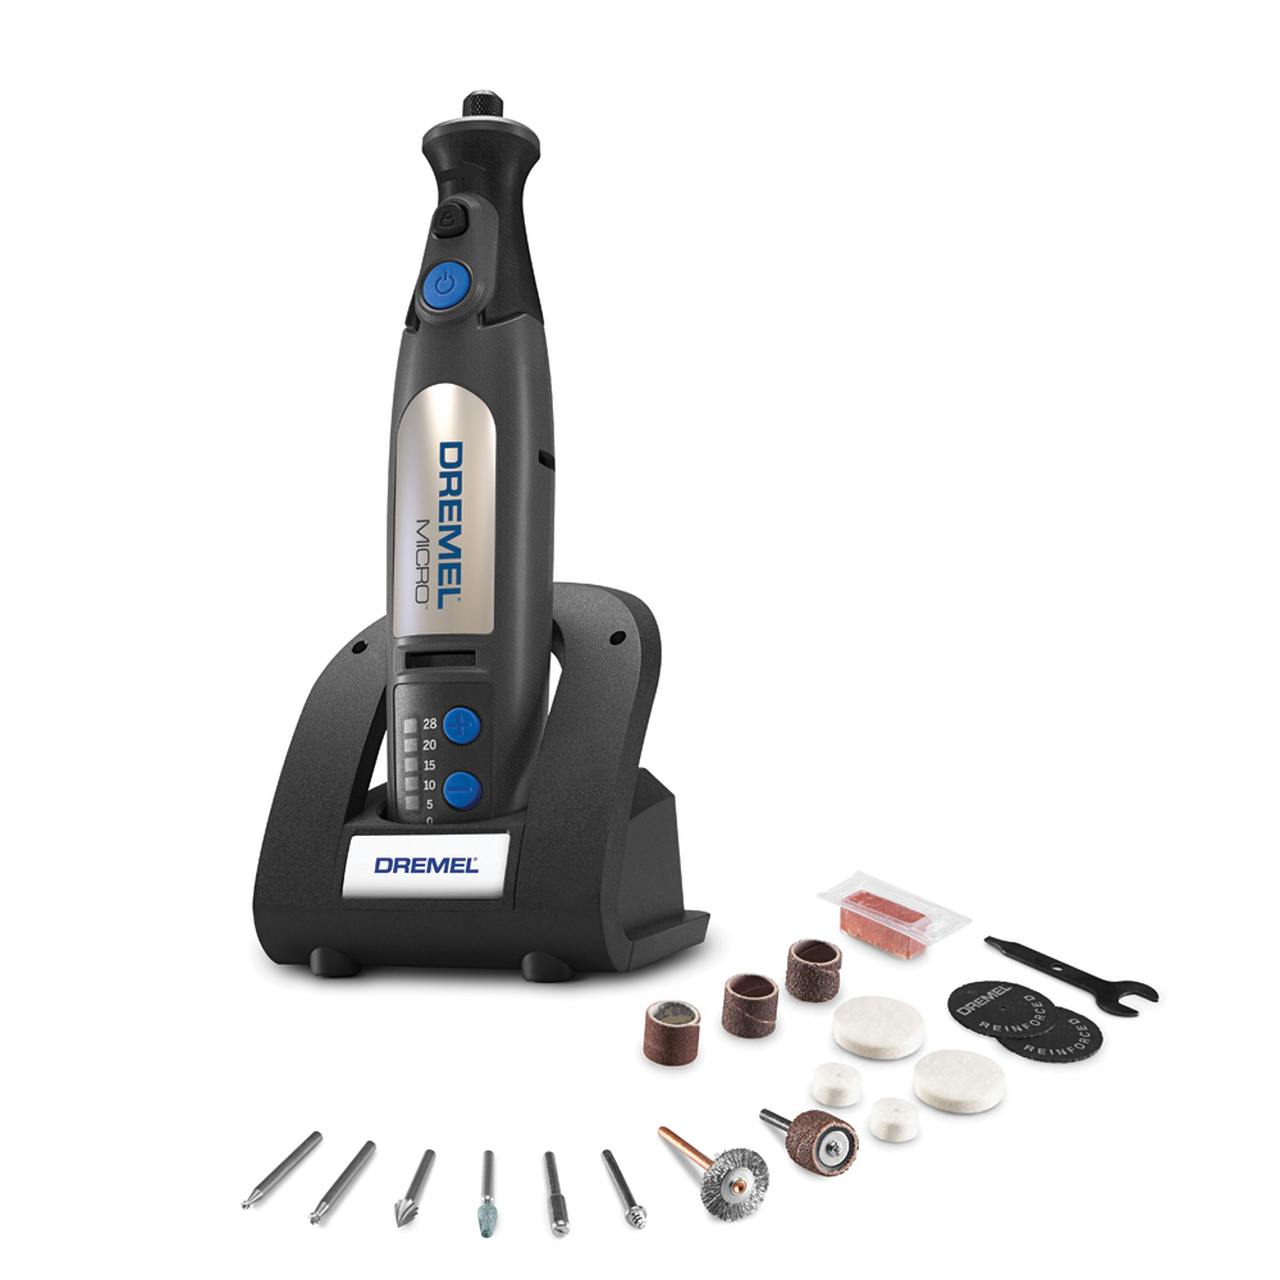 imagenMINITORNO DREMEL 7.2V INAL 8050N 18 ACCESORIOS